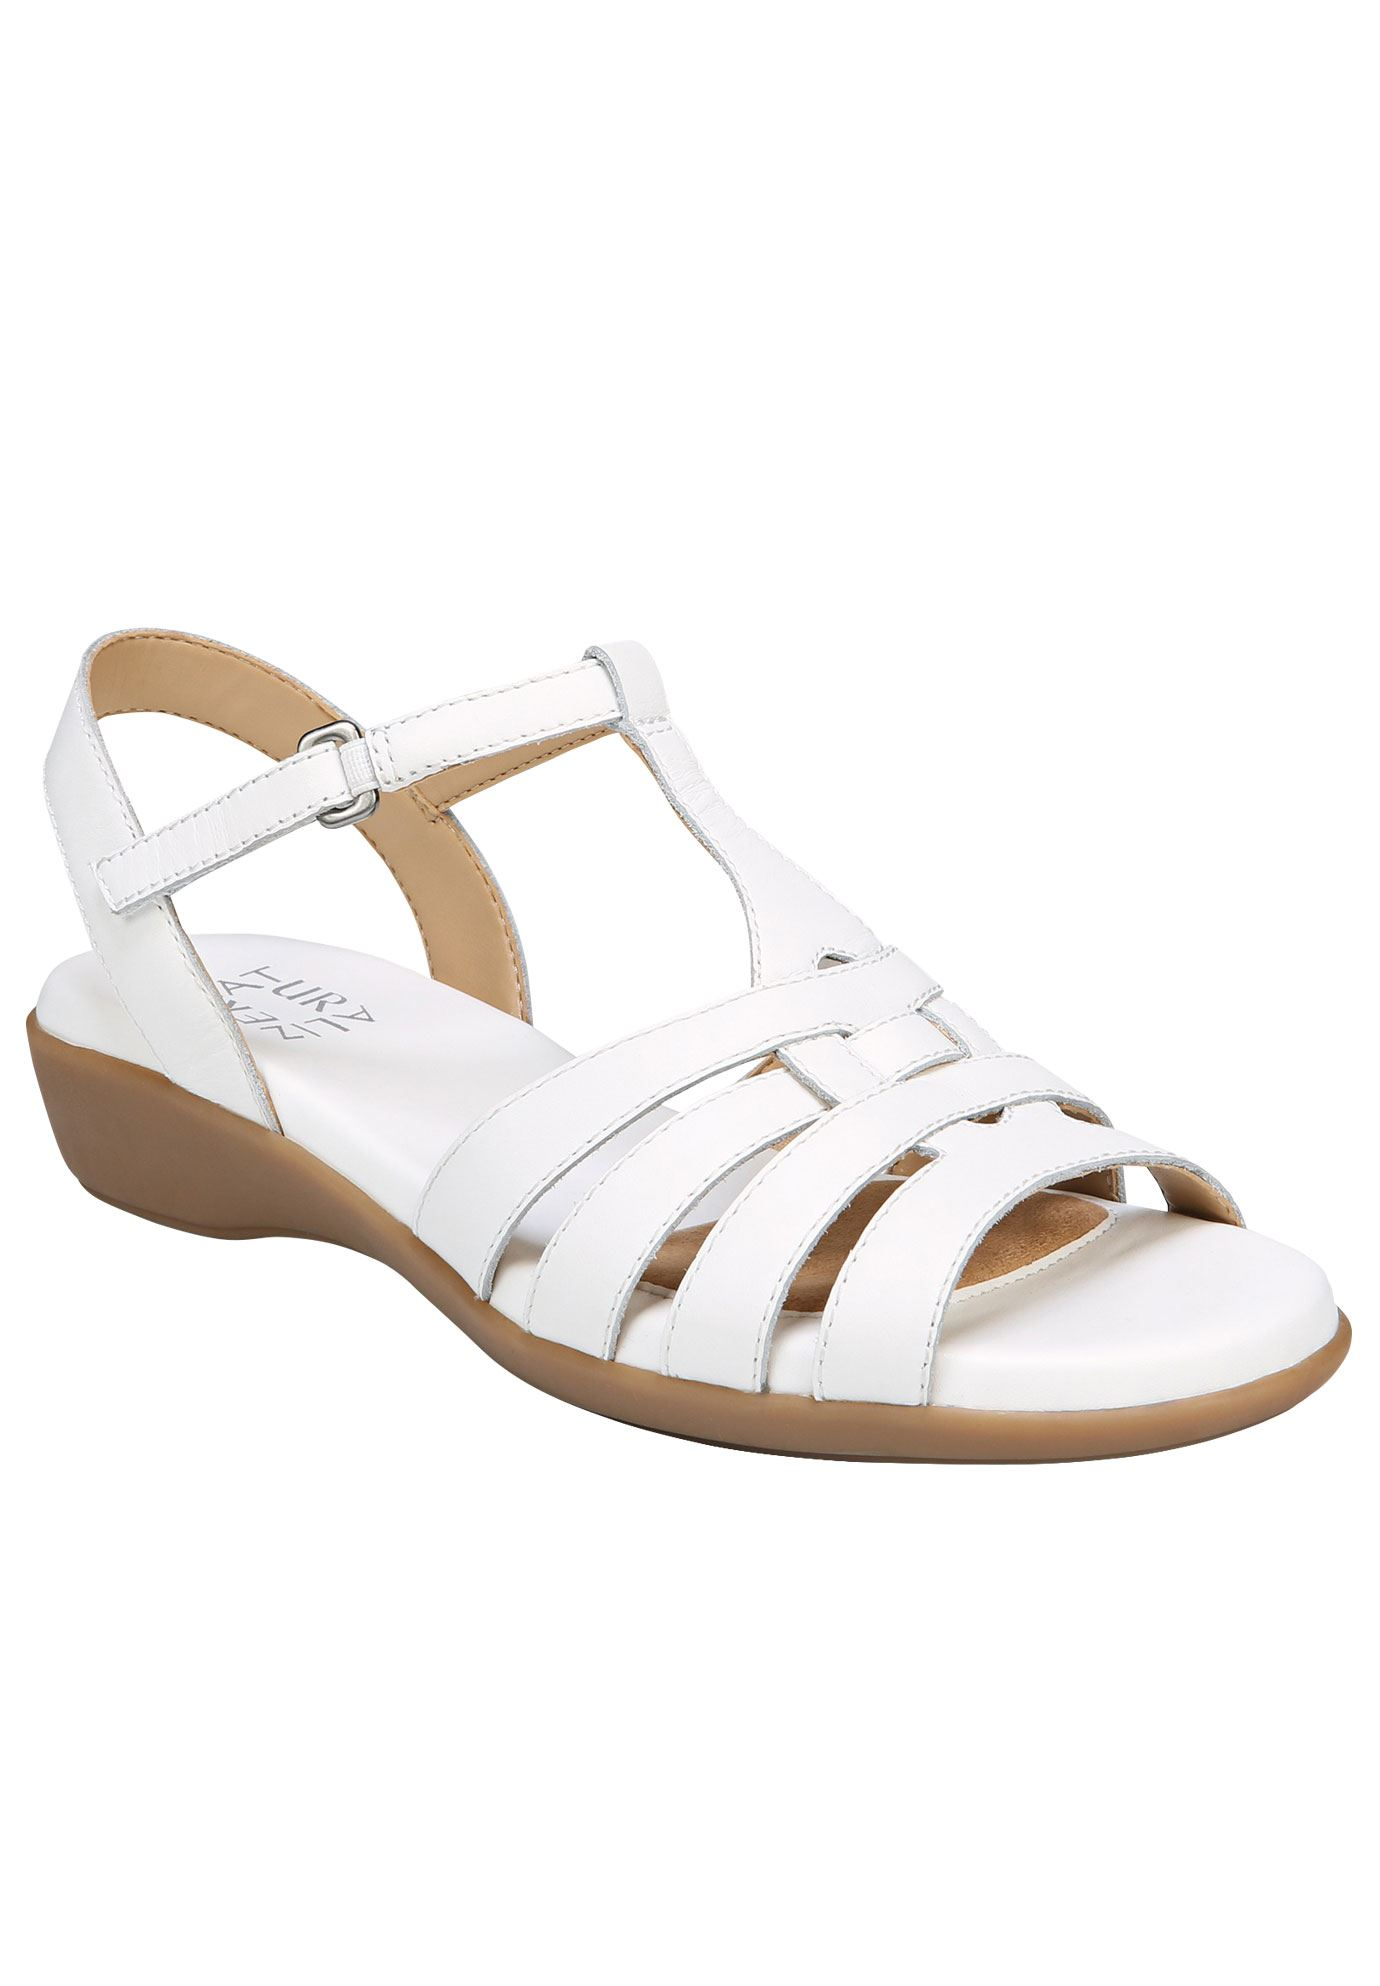 Nanci Sandals by Naturalizer®,